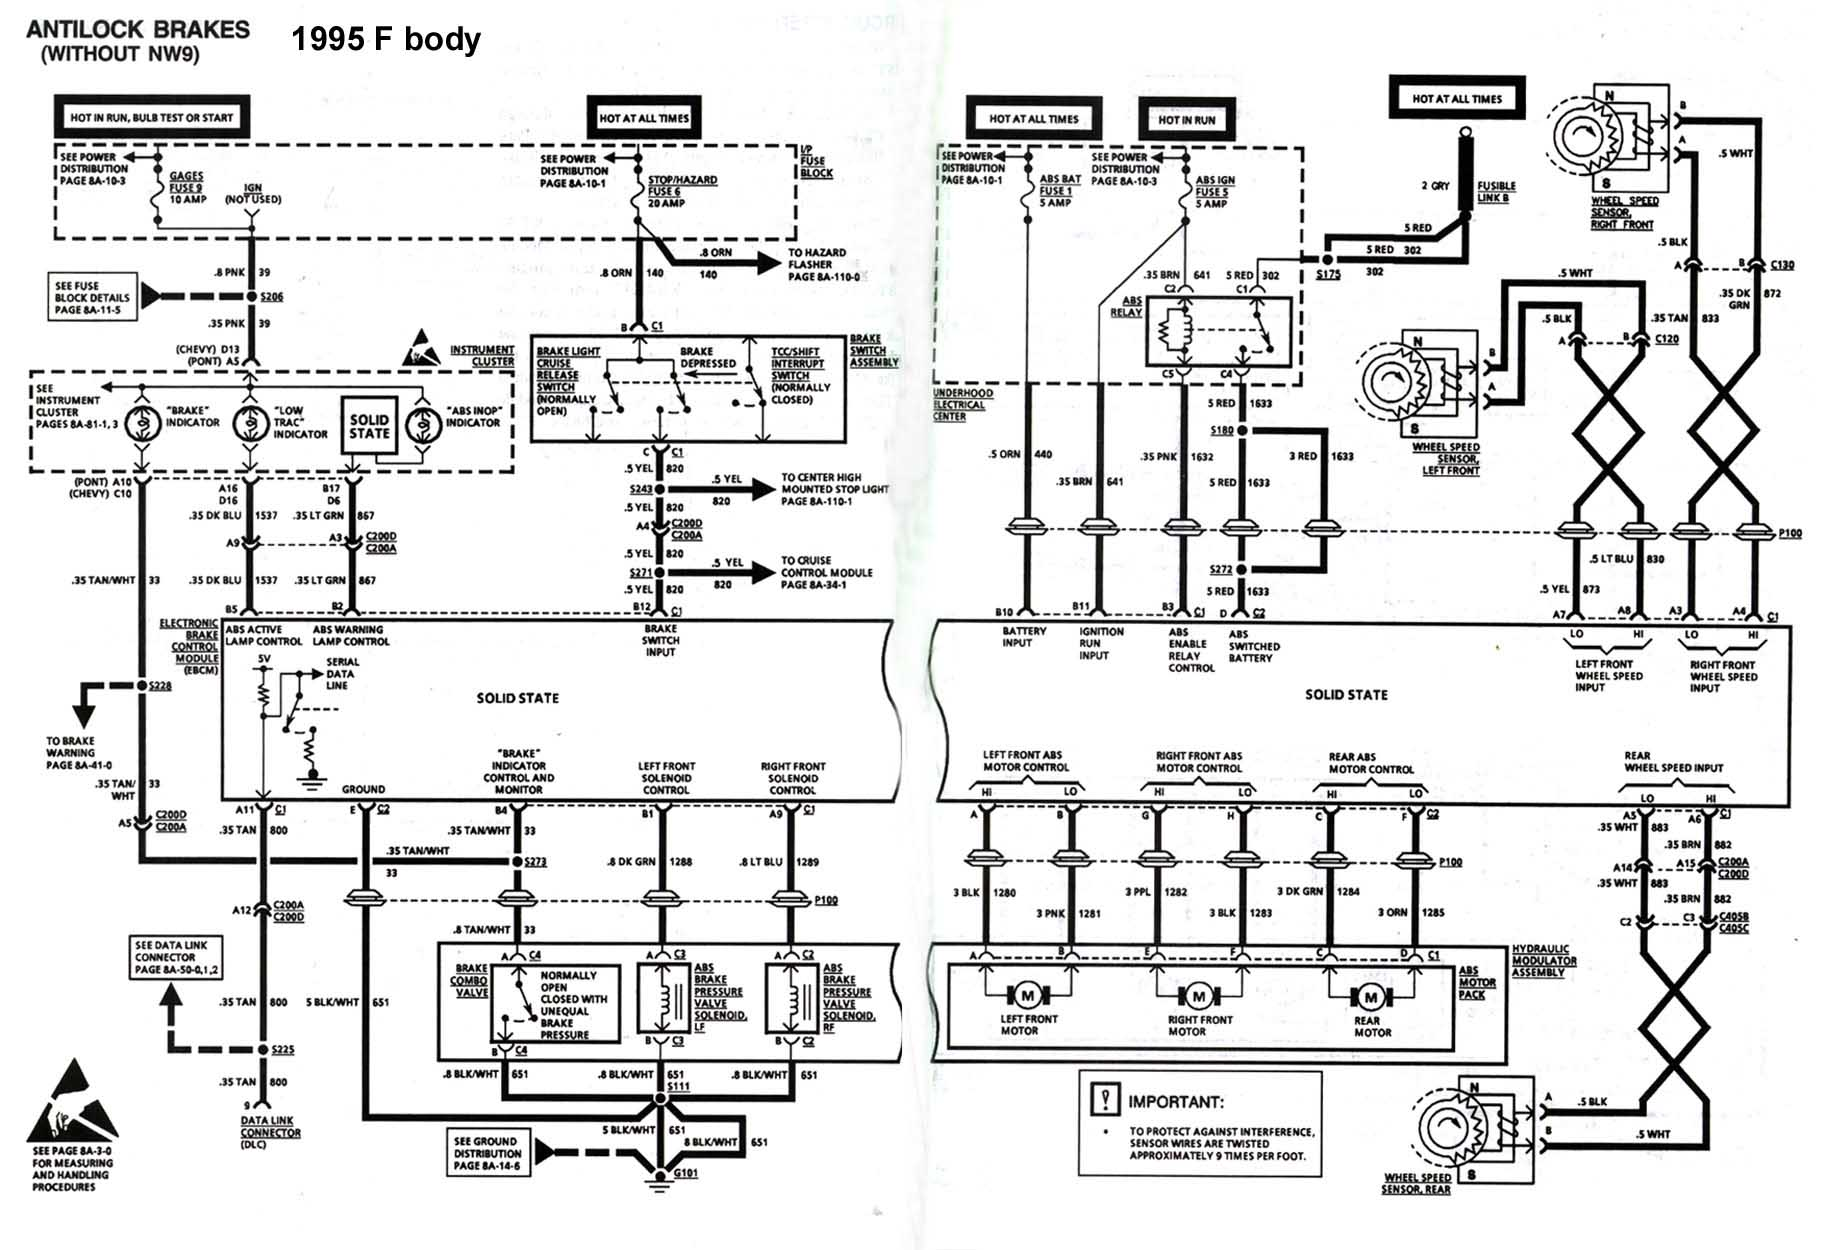 ABS_schematic 4th gen lt1 f body tech aids Toyota Tundra Electrical Diagram at readyjetset.co